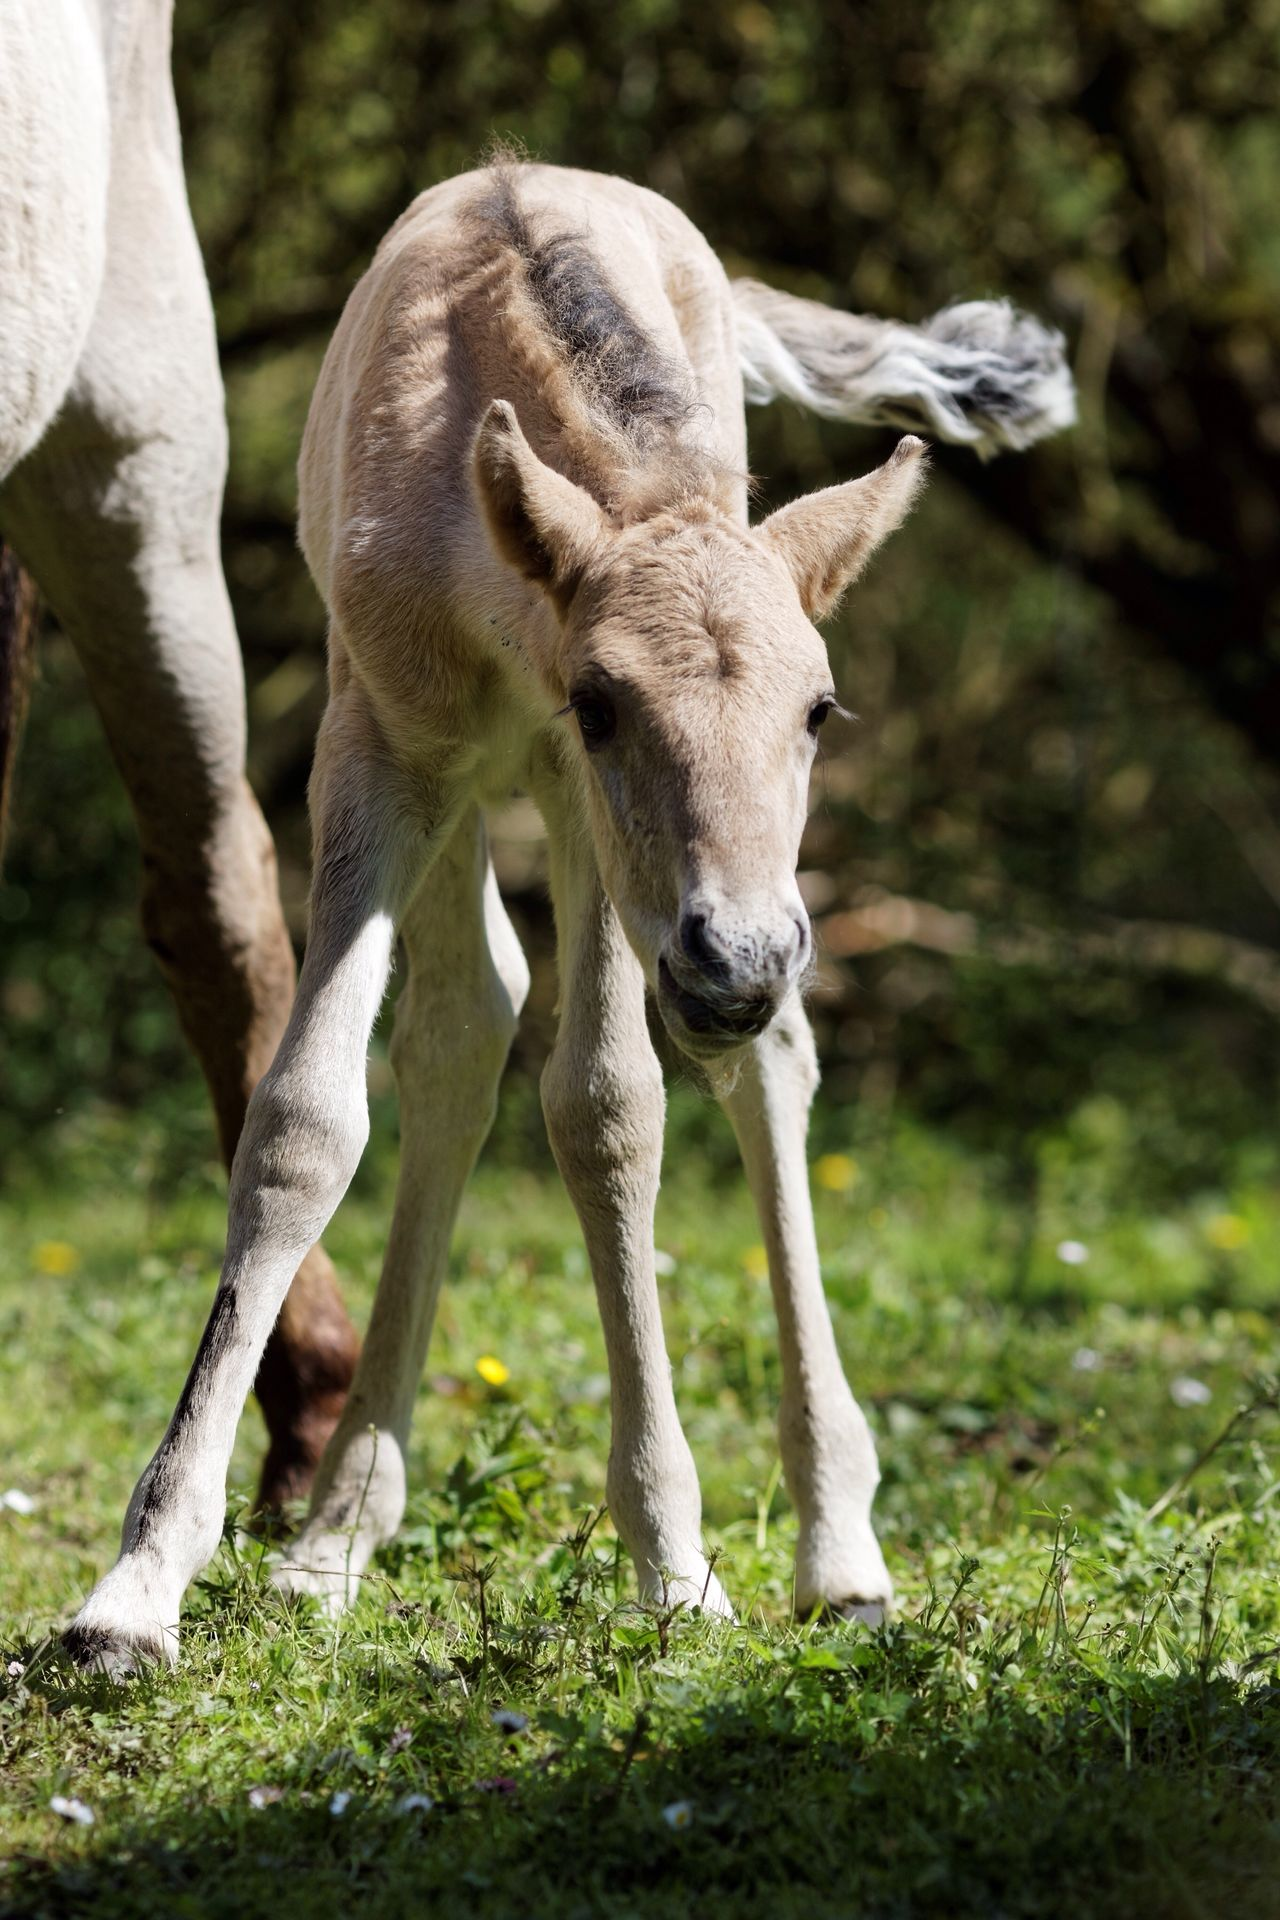 Newly Born Konik Foal Horse Animal Themes Domestic Animals Field Livestock Mammal One Animal Day Grass Focus On Foreground Nature Outdoors No People Standing Full Length Close-up